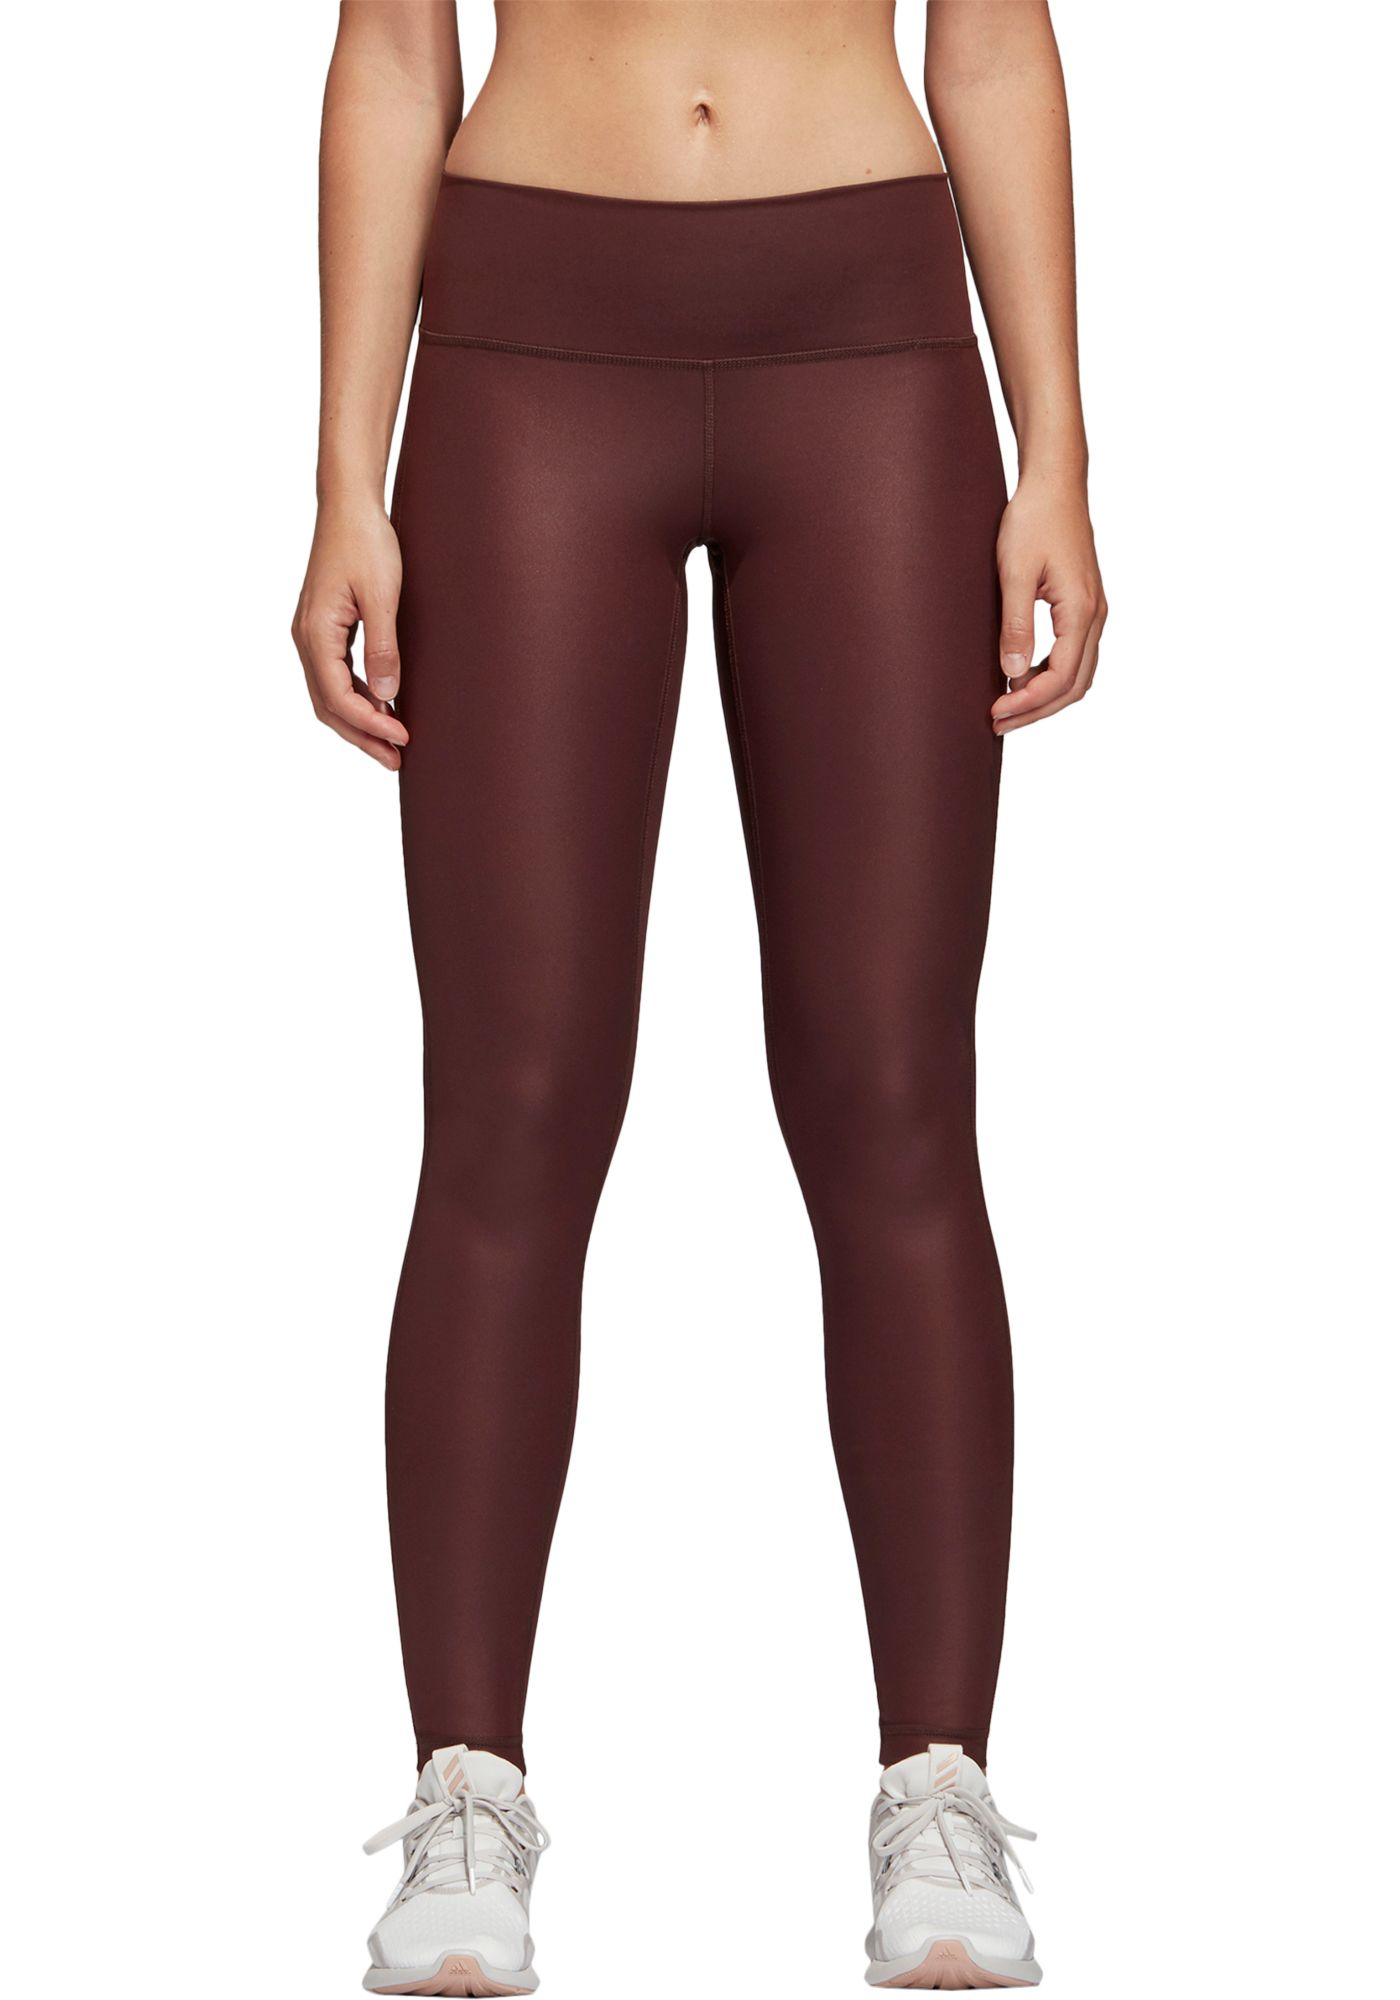 adidas Women's Believe This High Rise Long Tight